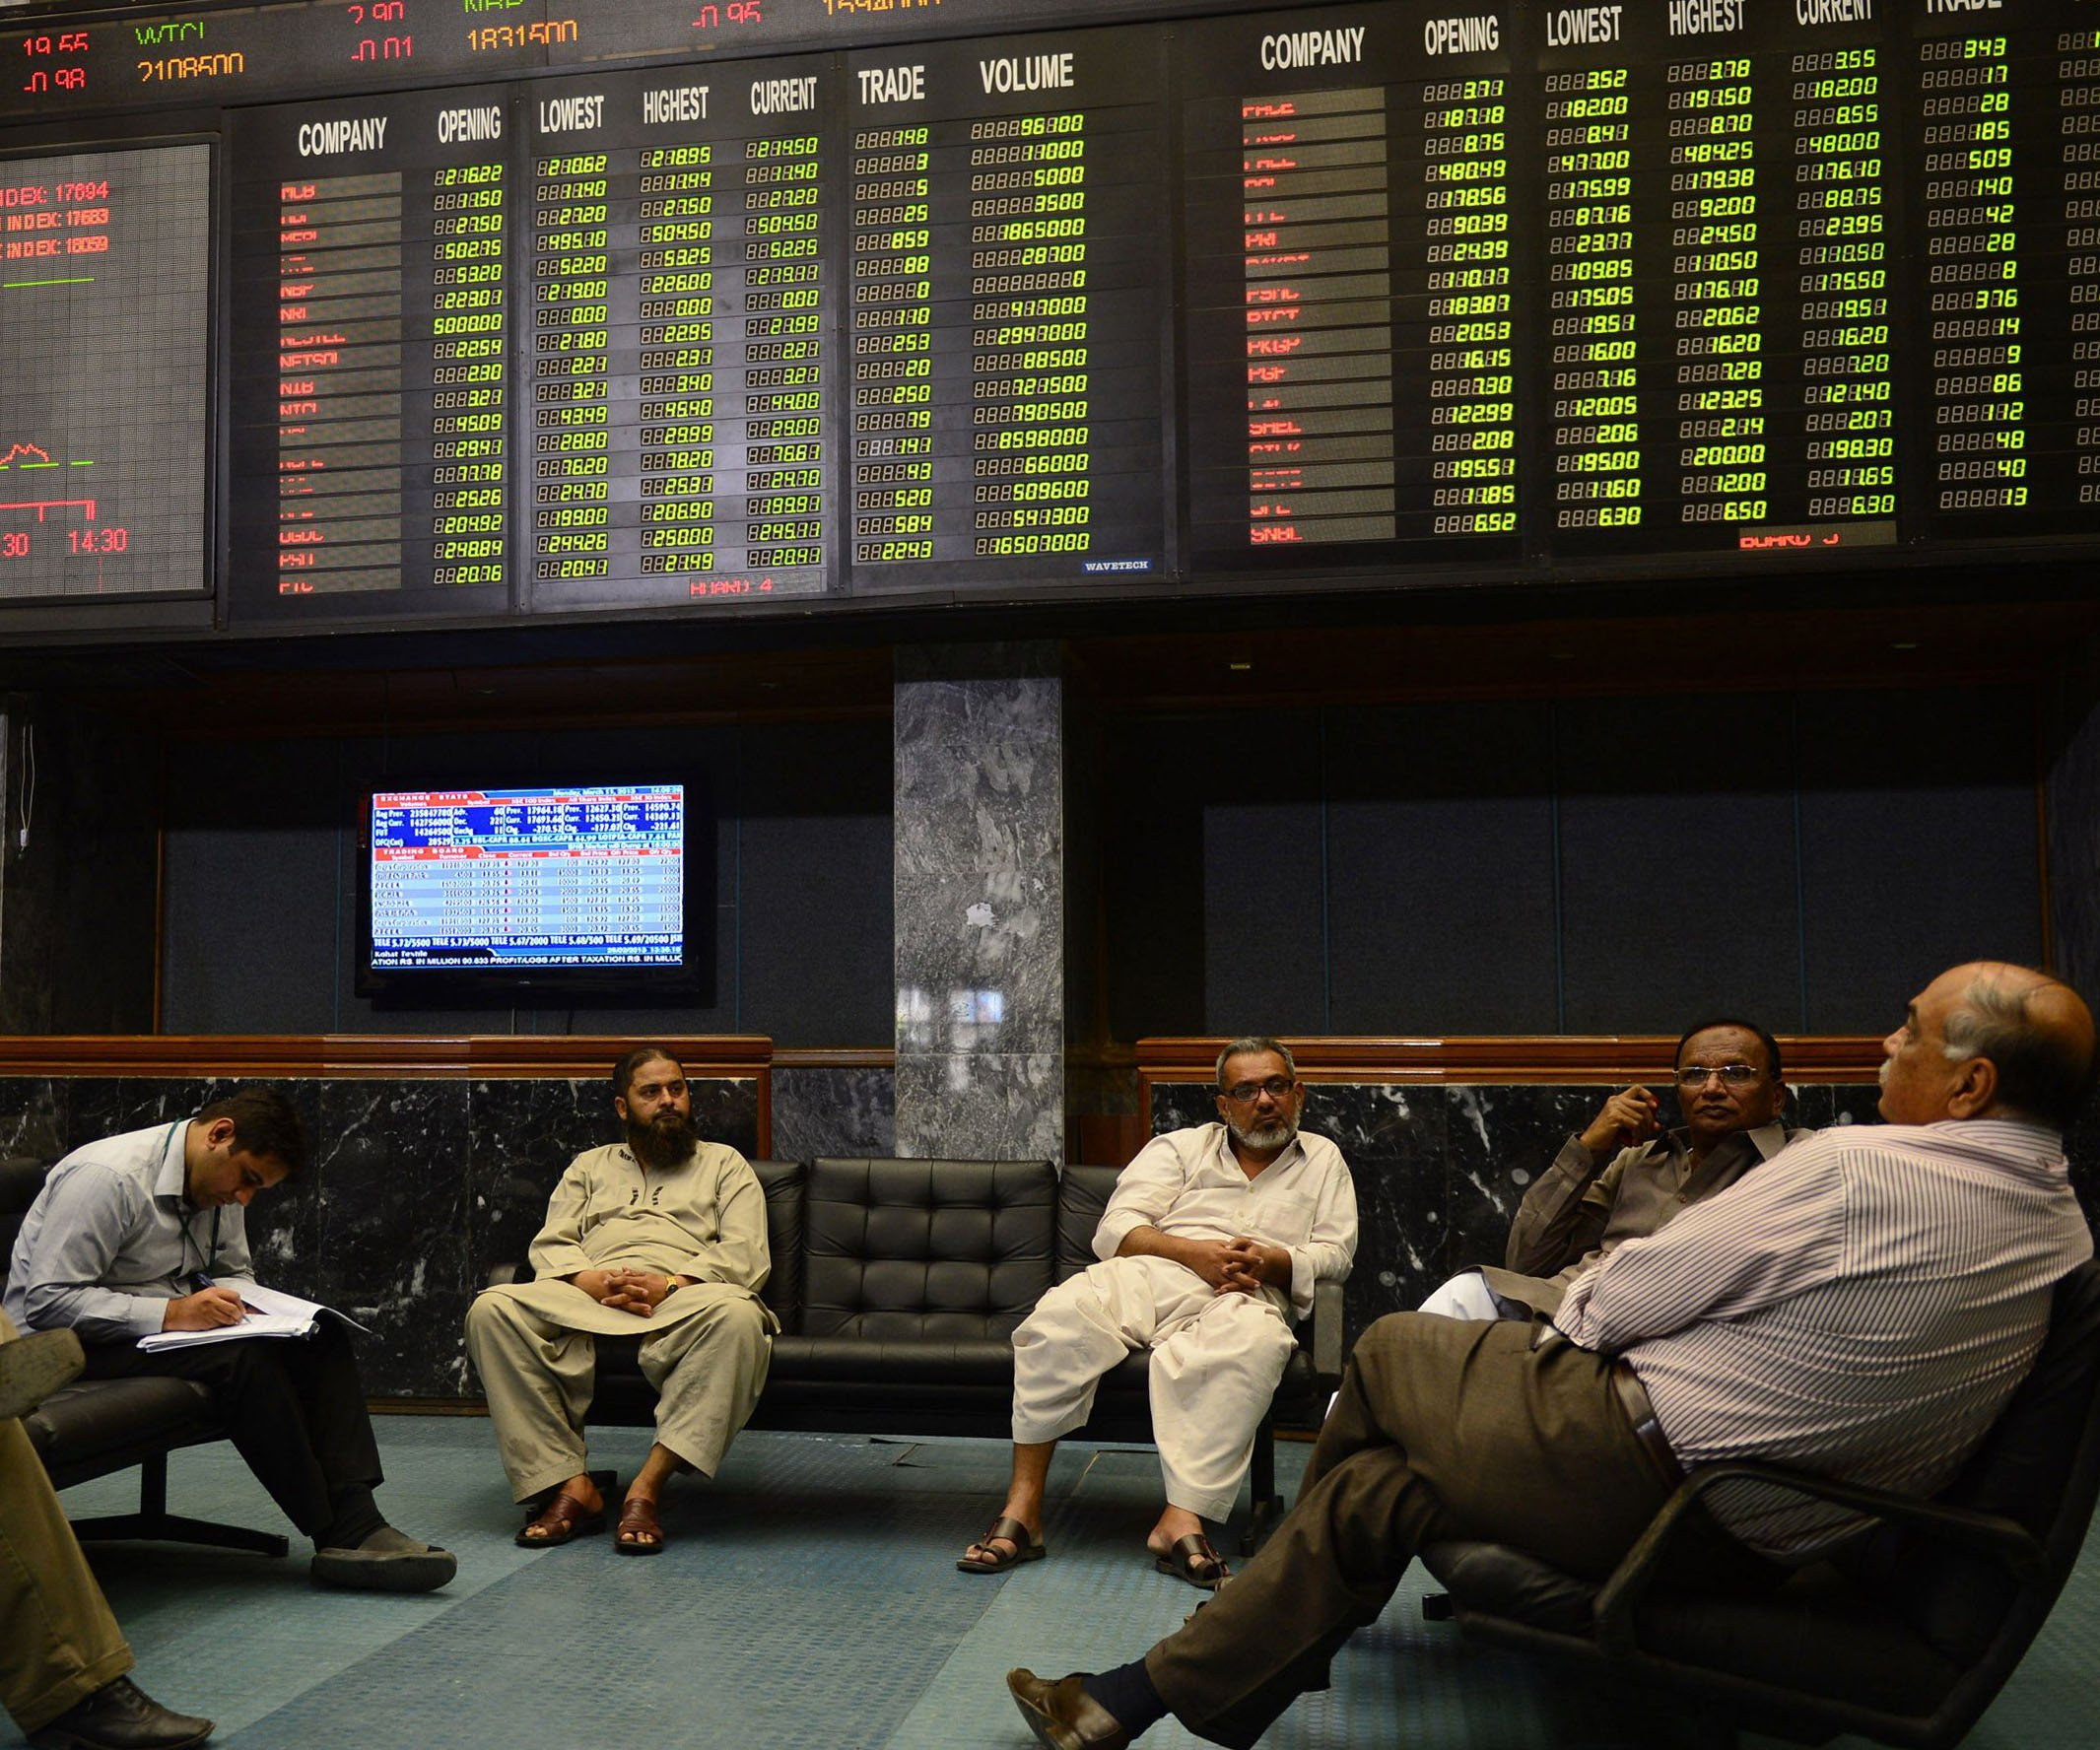 stock-market-kse-100-index-photo-afp-2-2-2-3-2-4-2-2-3-4-2-3-2-2-2-2-2-3-2-3-2-2-2-2-2-2-2-2-2